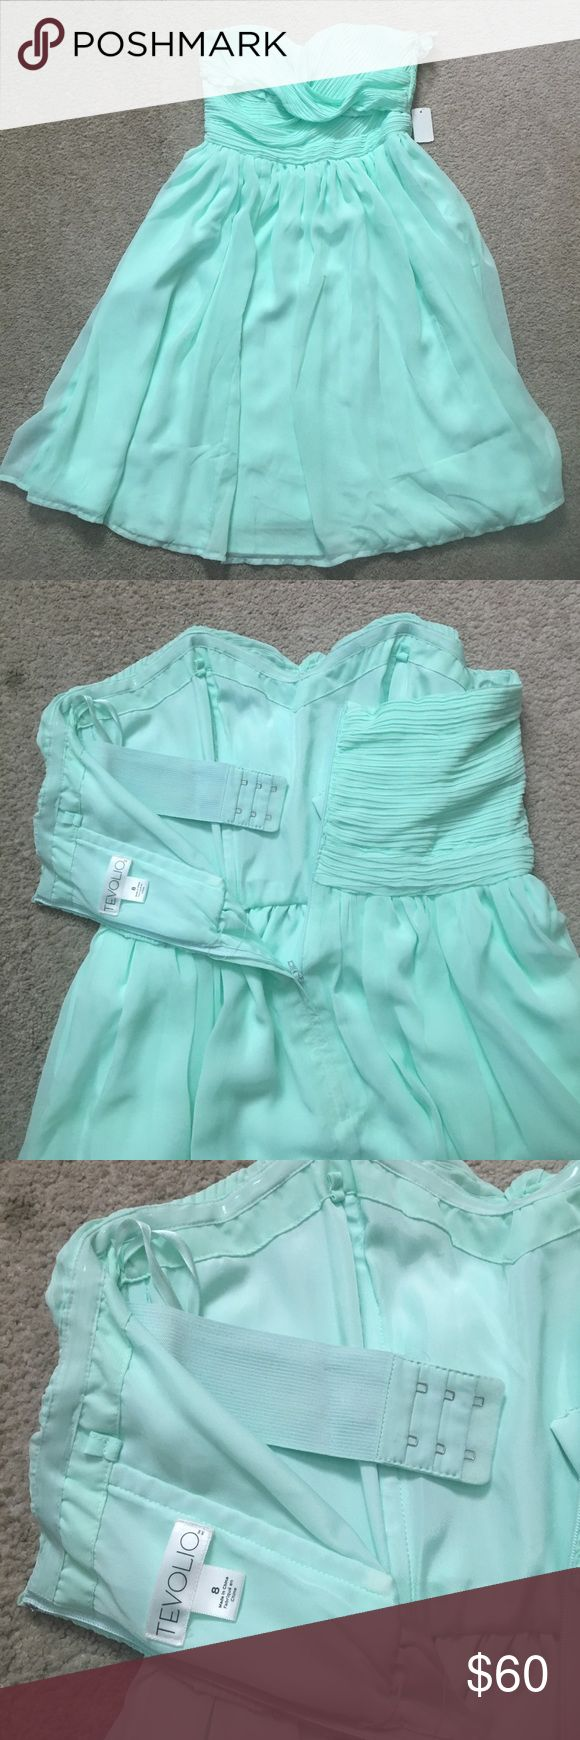 Brand new strapless mint colored dress Beautiful mint green strapless dress, with built in bra.  Perfect for a nice evening out, cocktail party, formal event, or homecoming!  It's brand new with tags still attached. Dresses